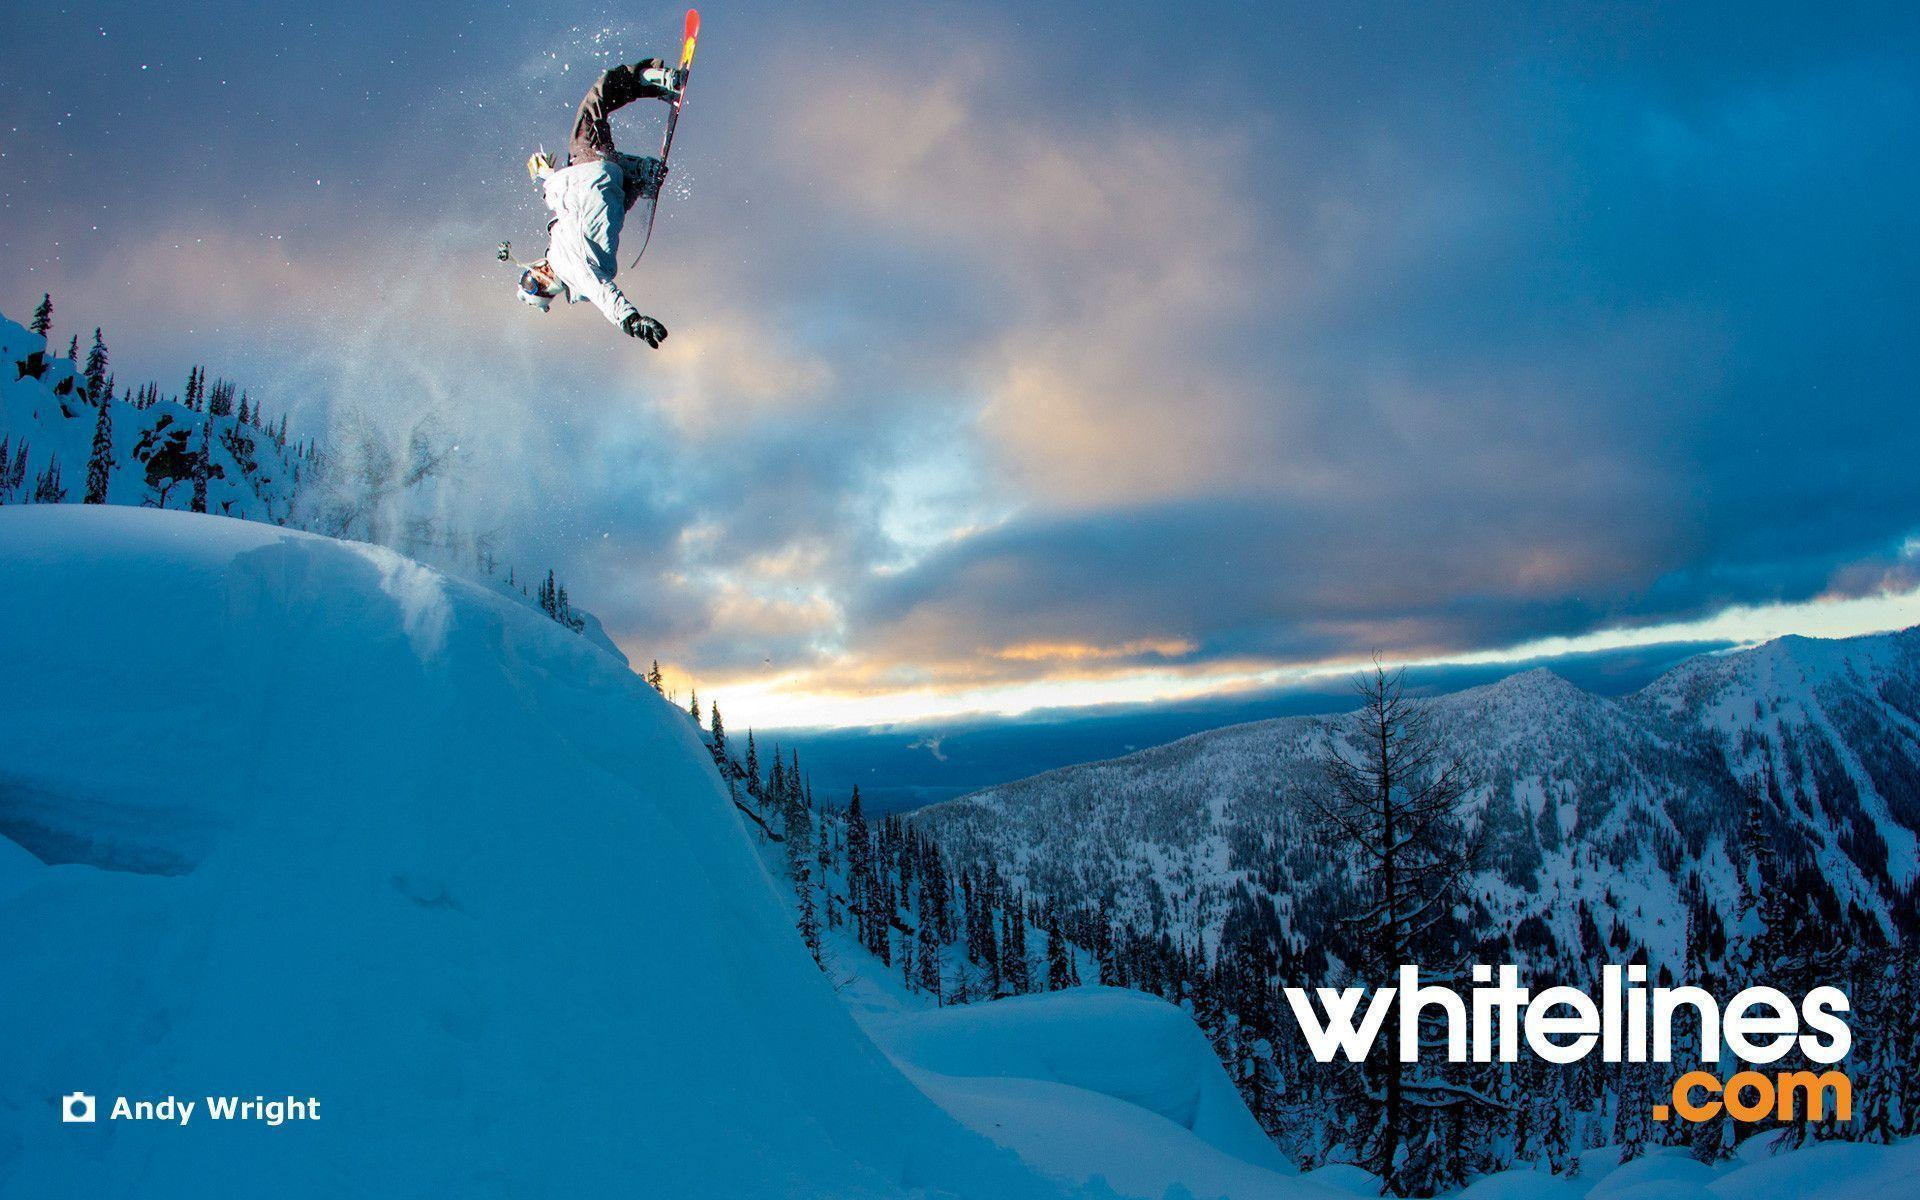 Snowboarding Wallpapers - Full HD wallpaper search - page 2